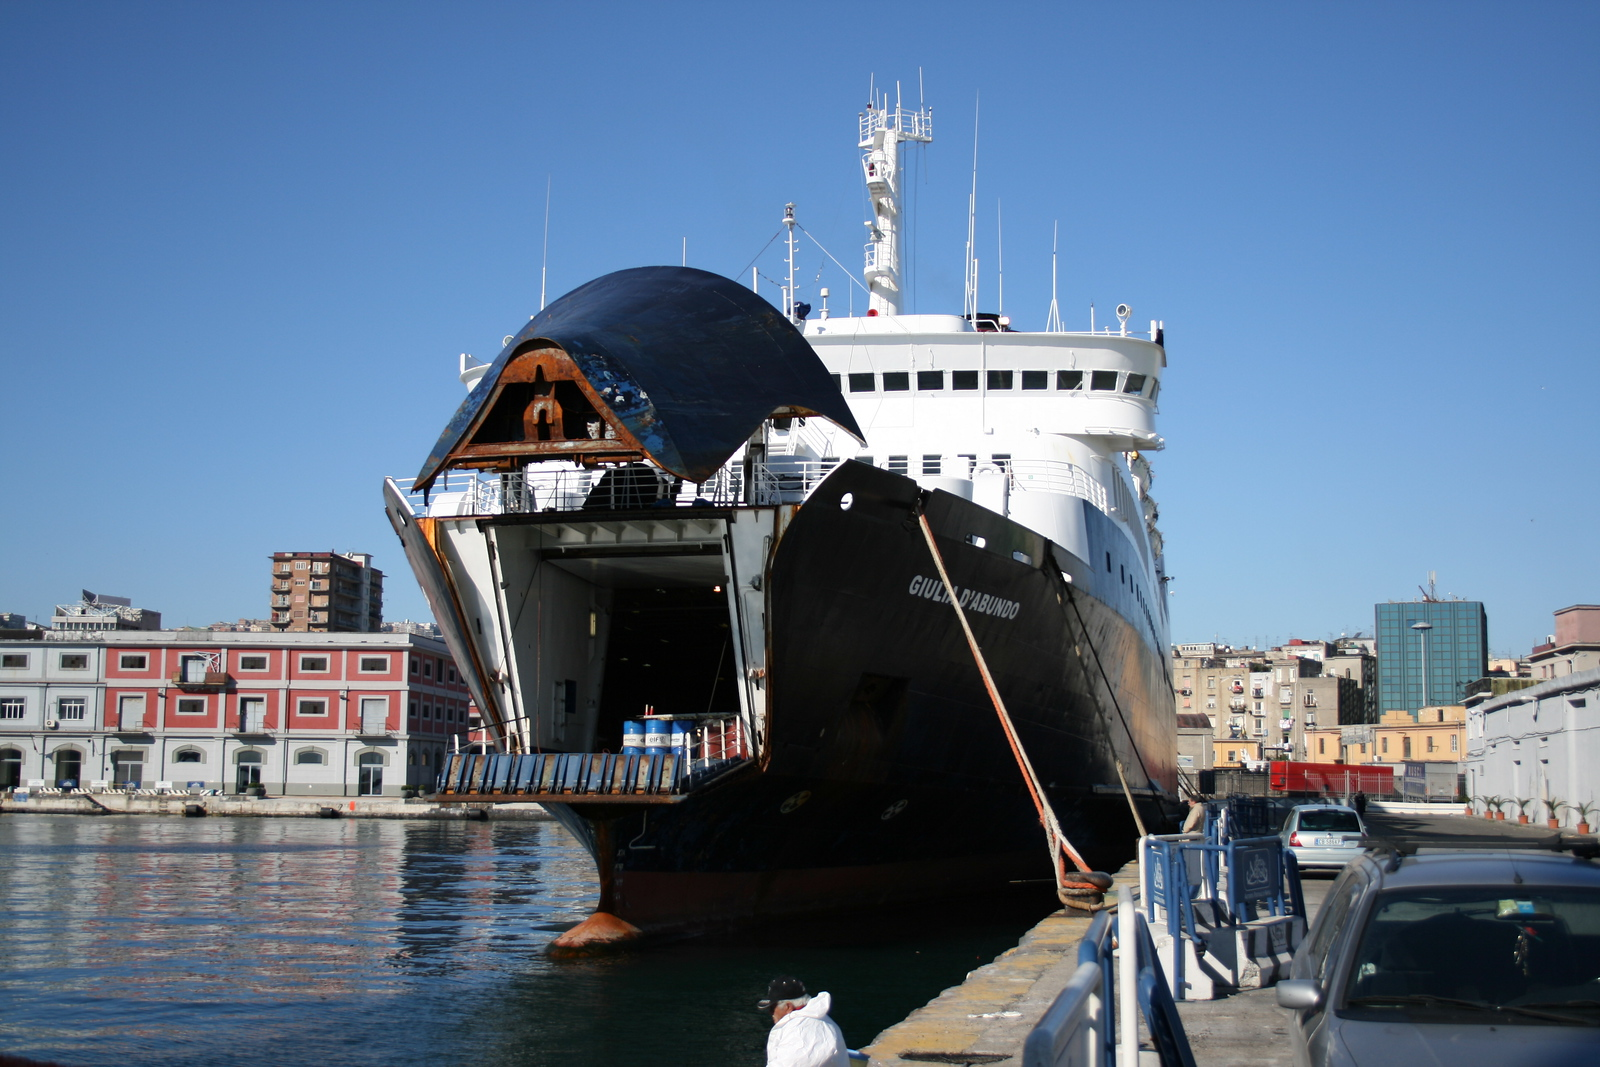 2008 - F/B GIULIA D'ABUNDO during works in Napoli.